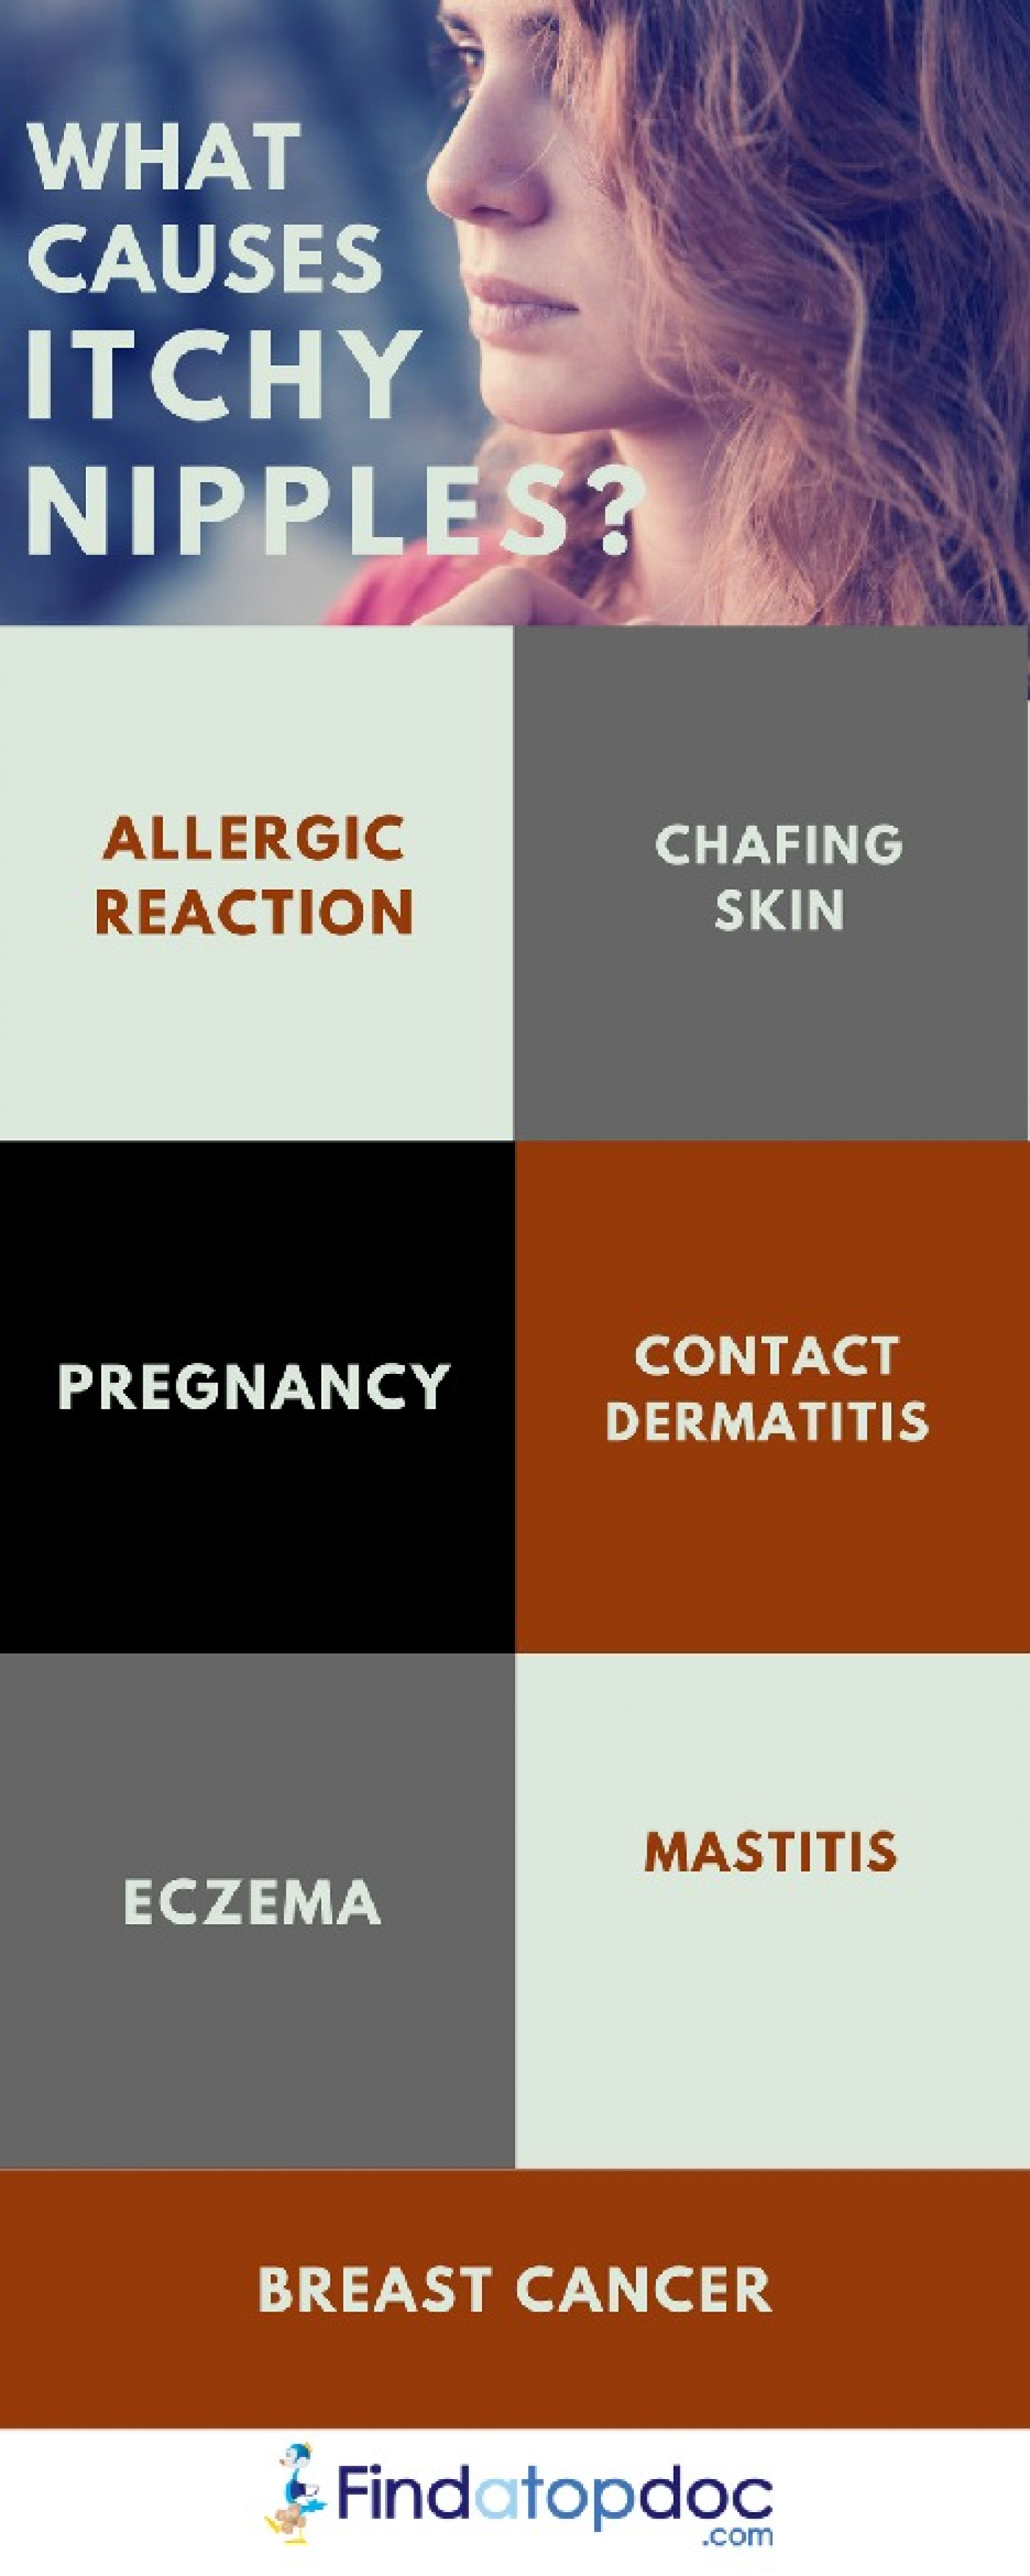 What Causes Itchy Nipples? : Symptoms and Causes Infographic